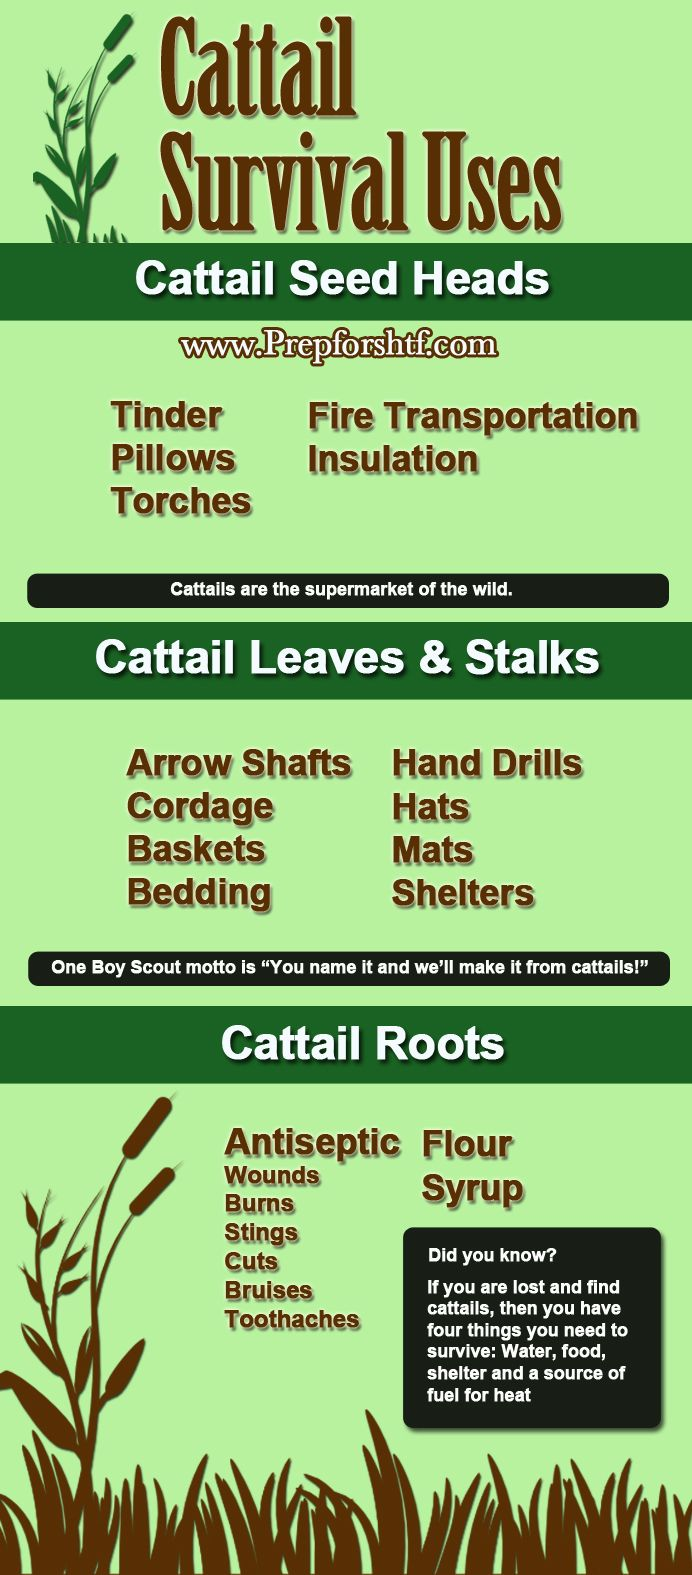 Forum on this topic: 4 Ways to Eat Cattails, 4-ways-to-eat-cattails/